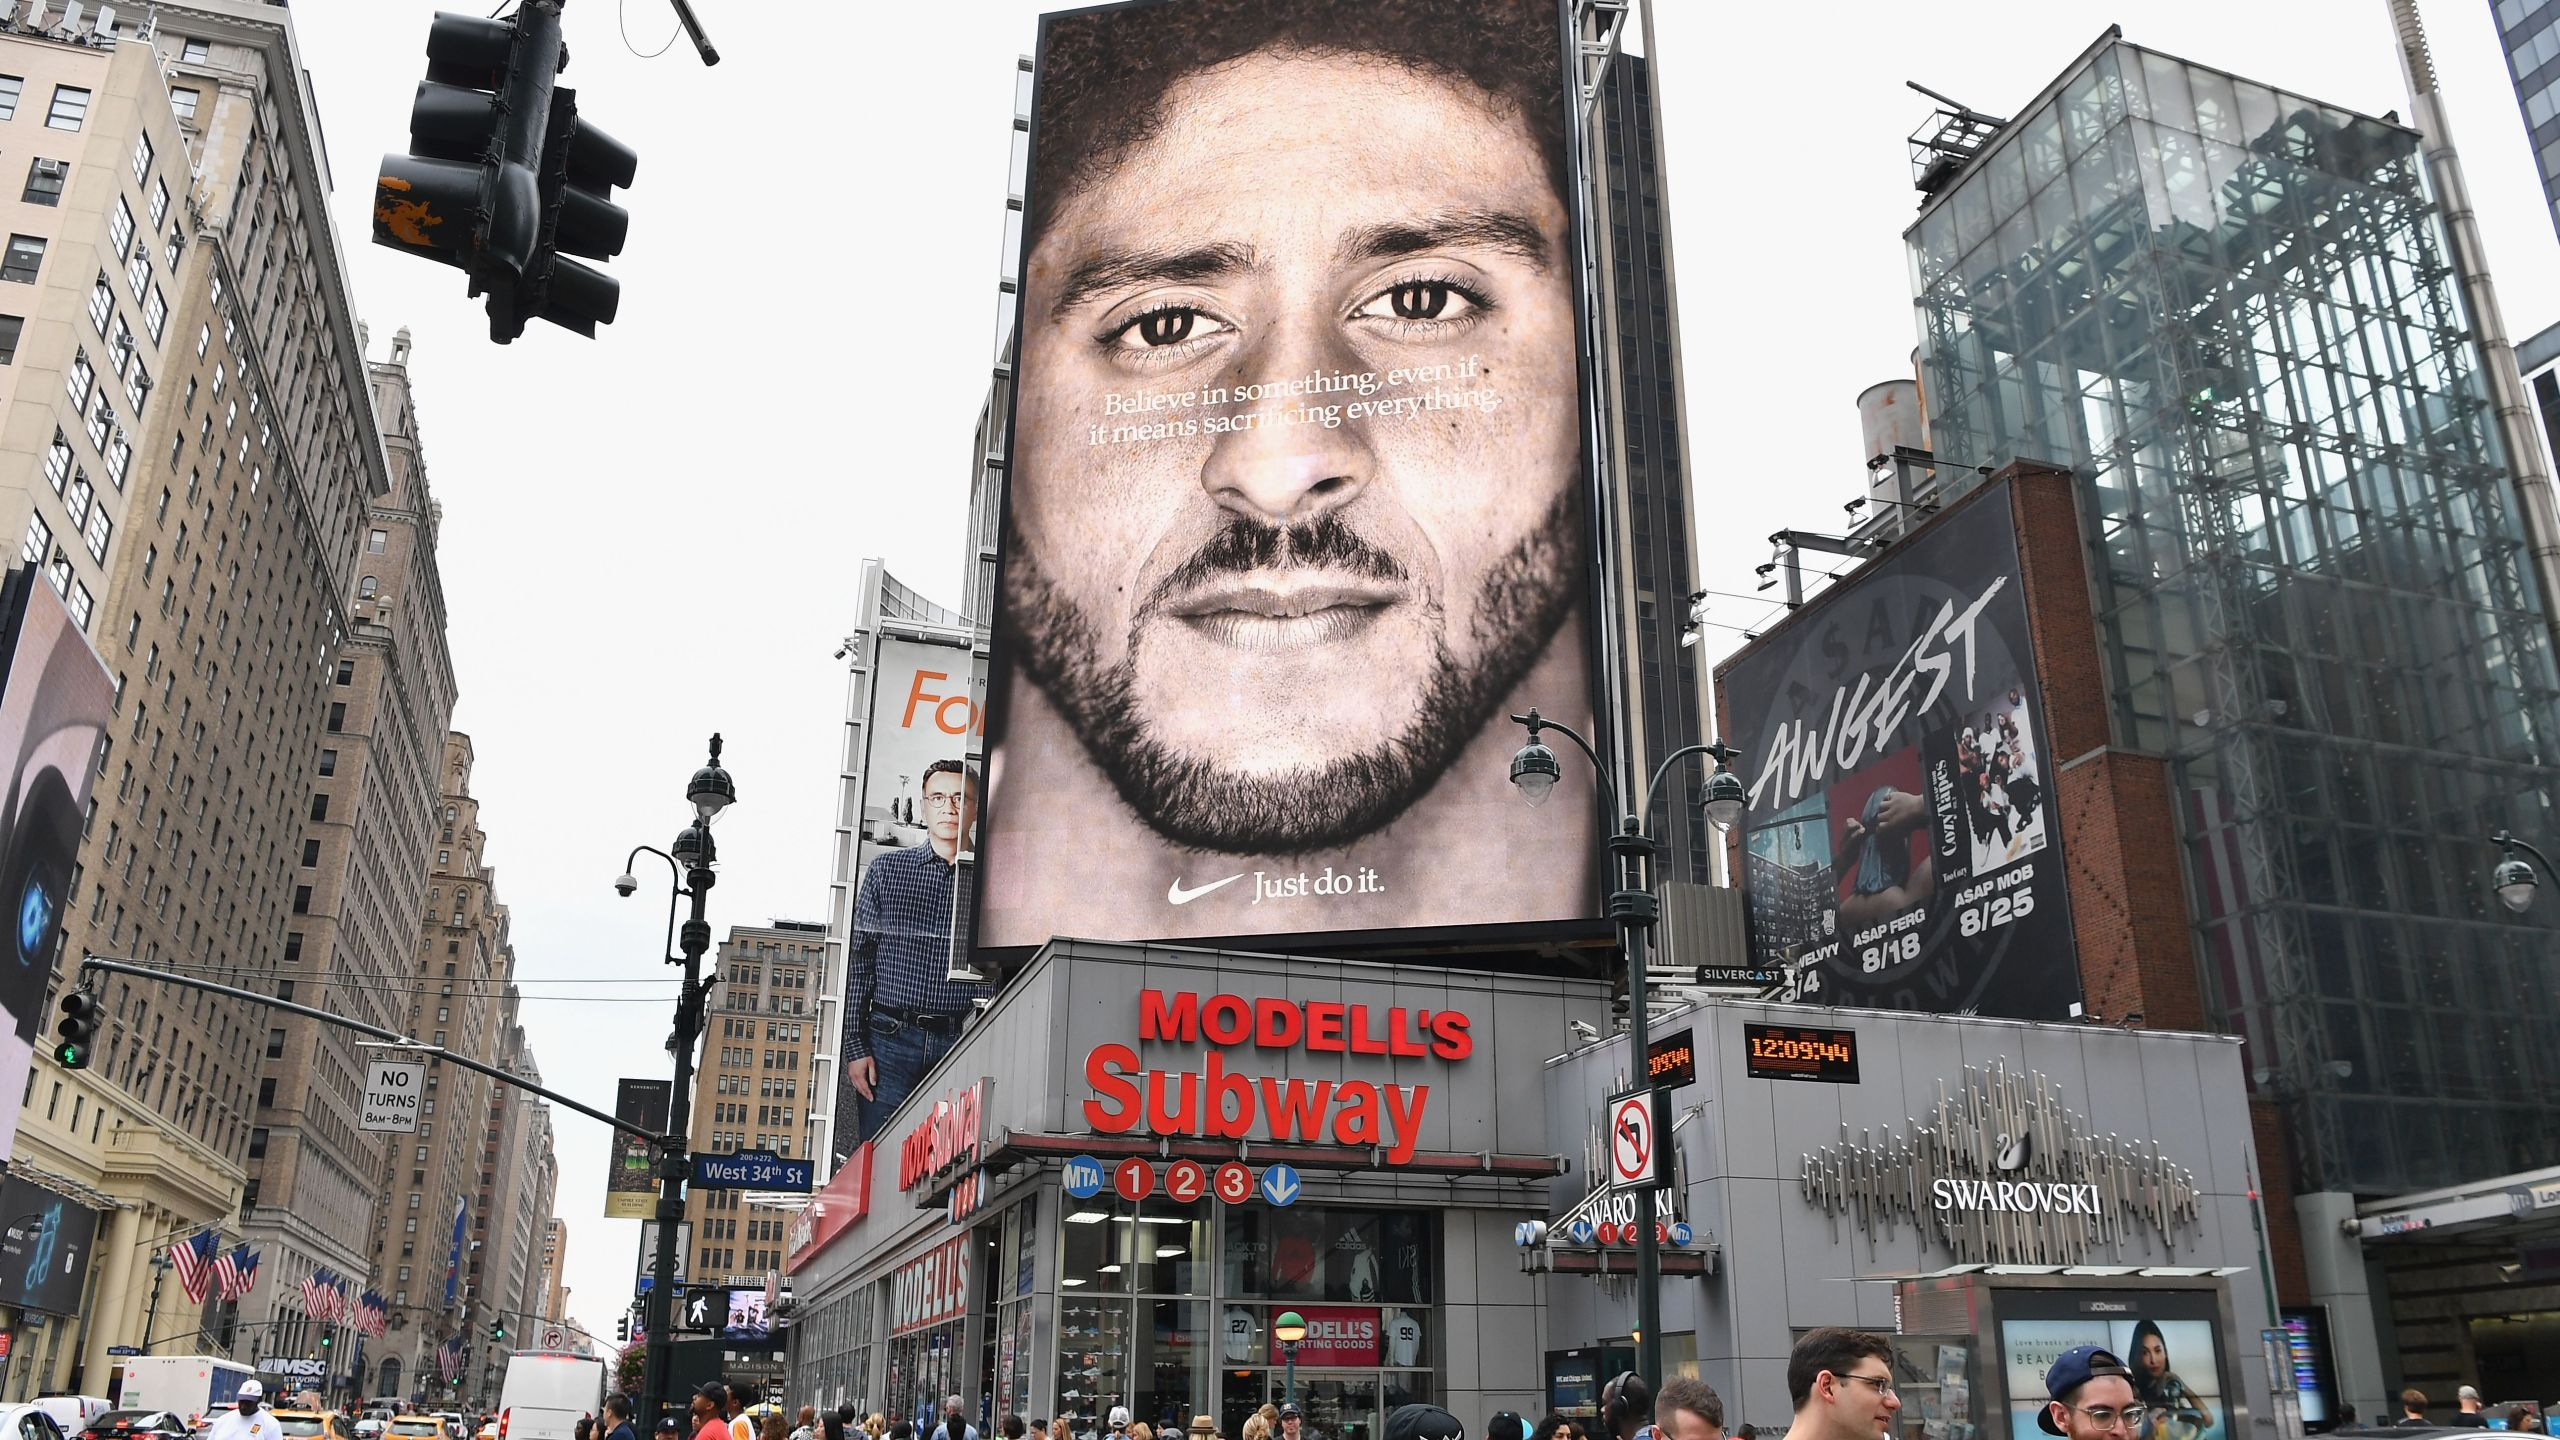 A Nike ad featuring Colin Kaepernick is on display on Sept. 8, 2018 in New York City. (Credit: ANGELA WEISS/AFP/Getty Images)